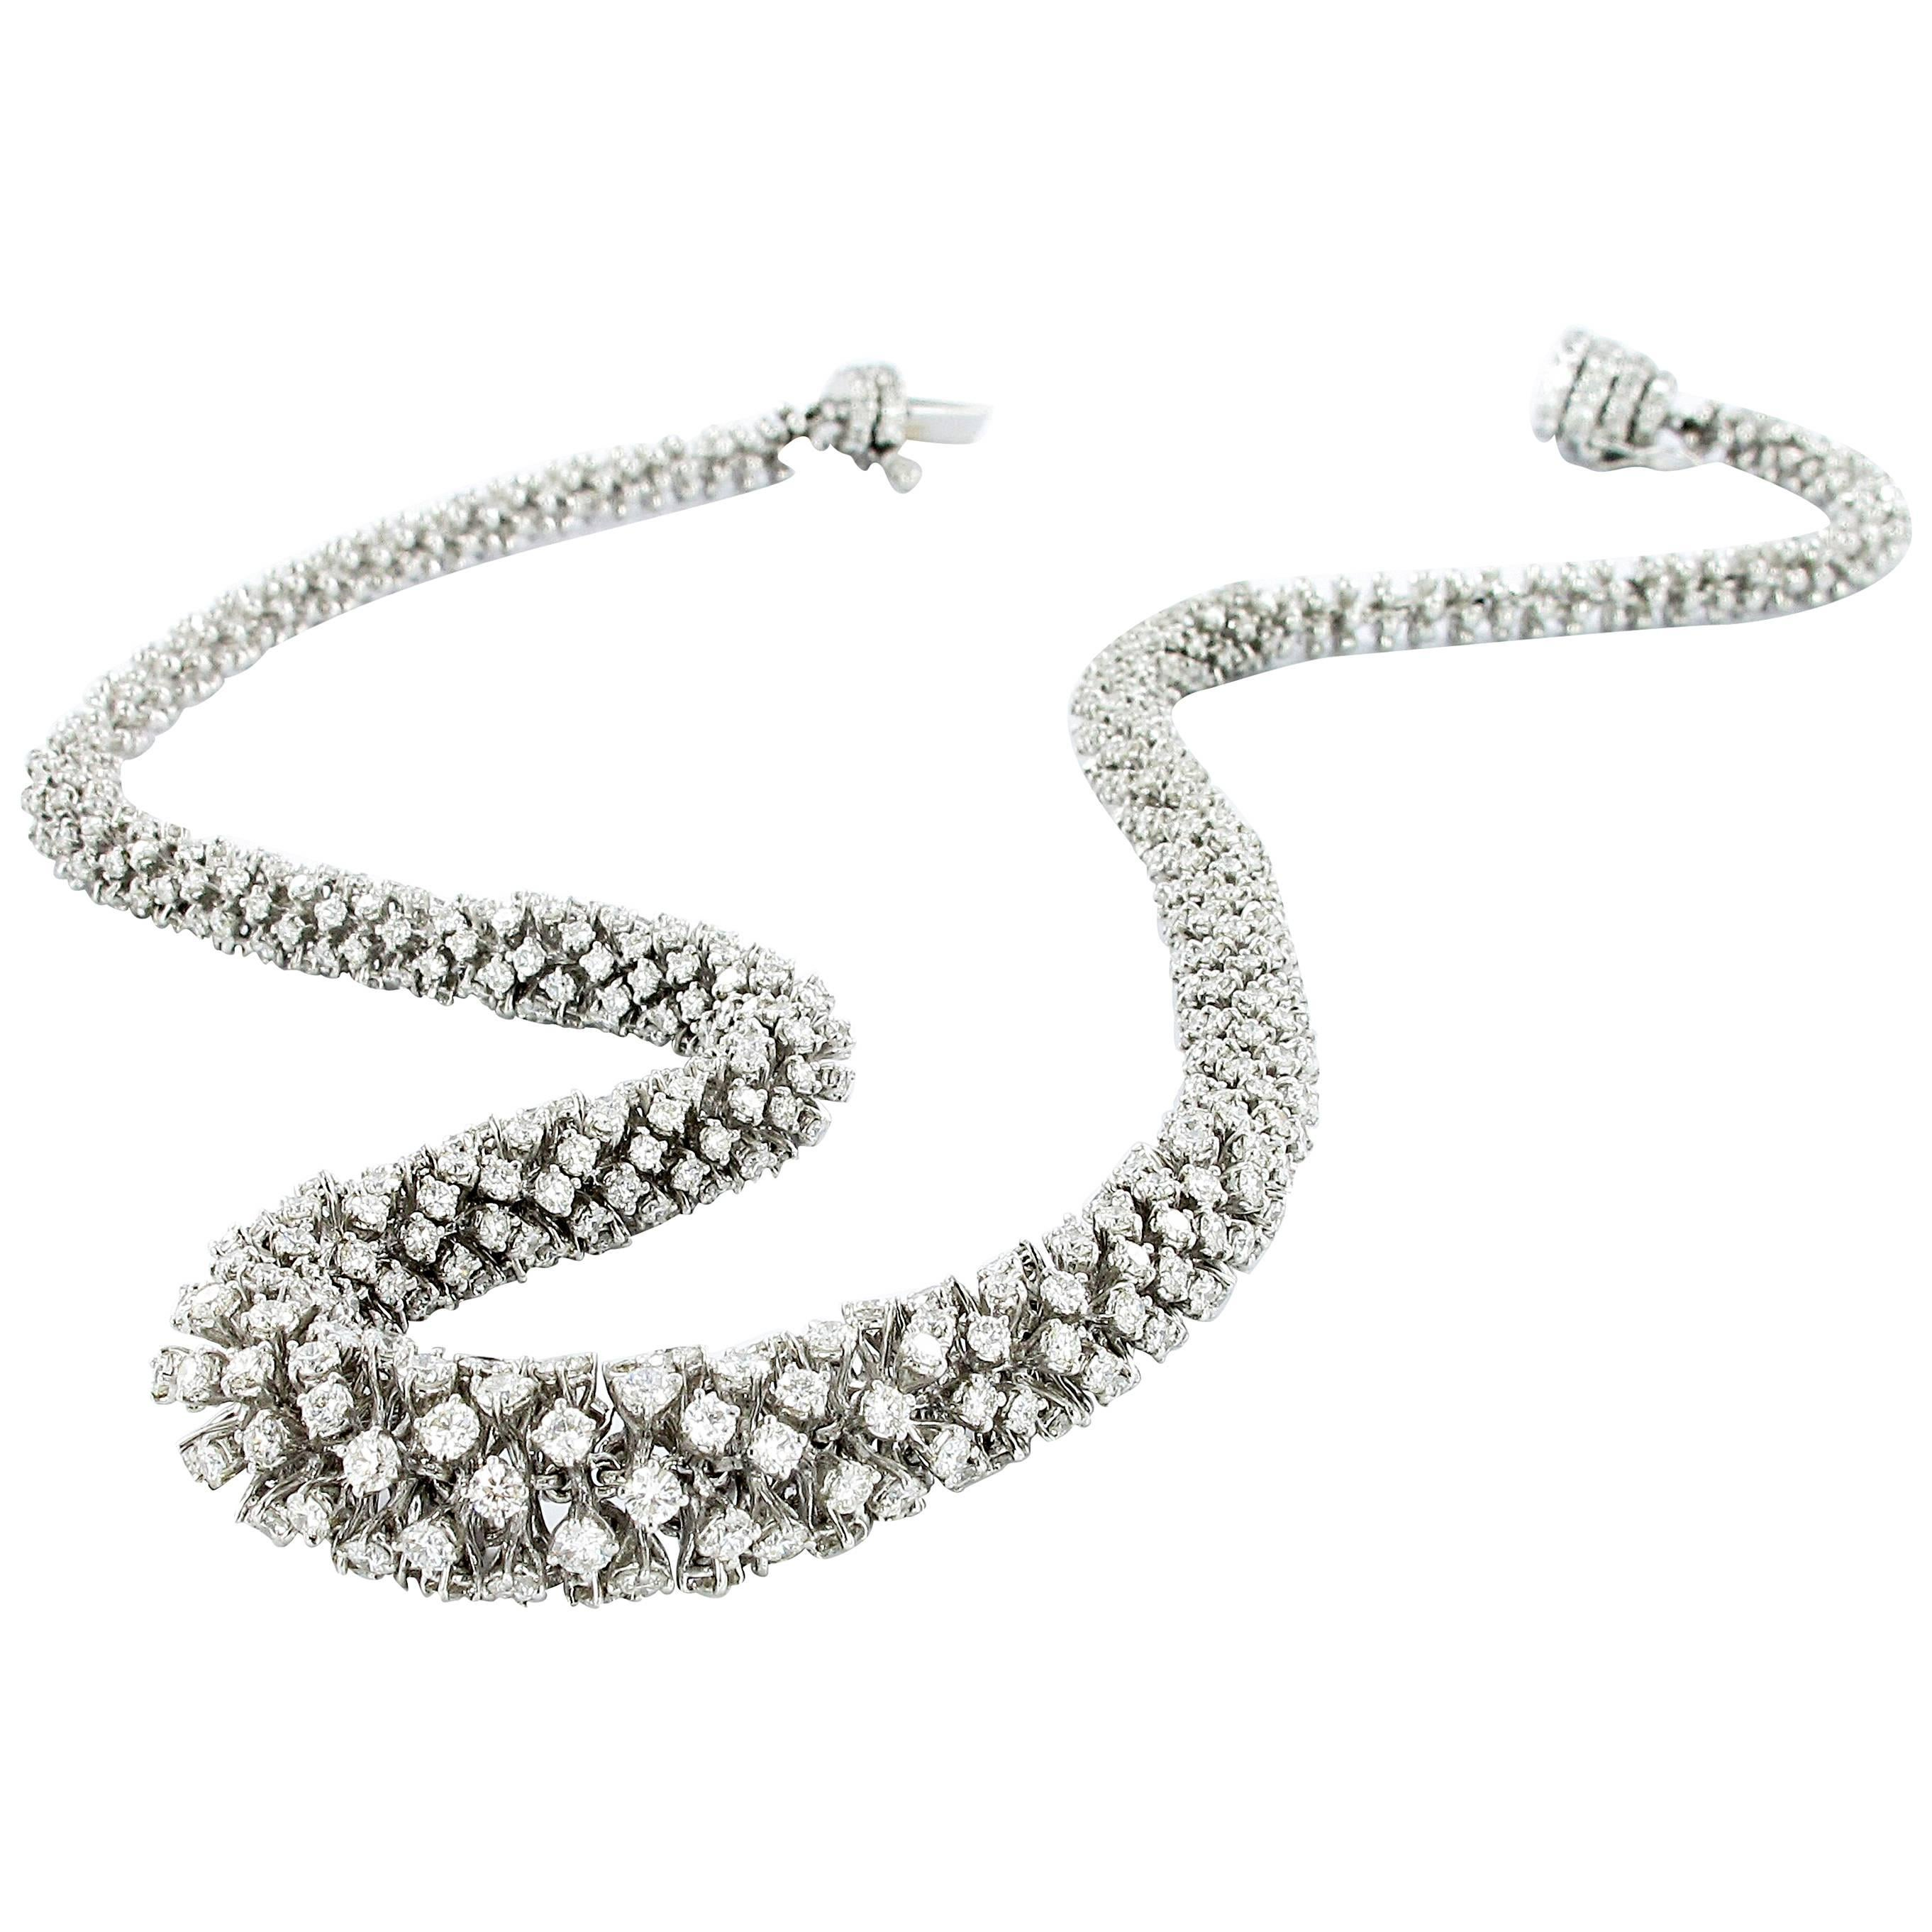 Diamond Necklace in White Gold 18K